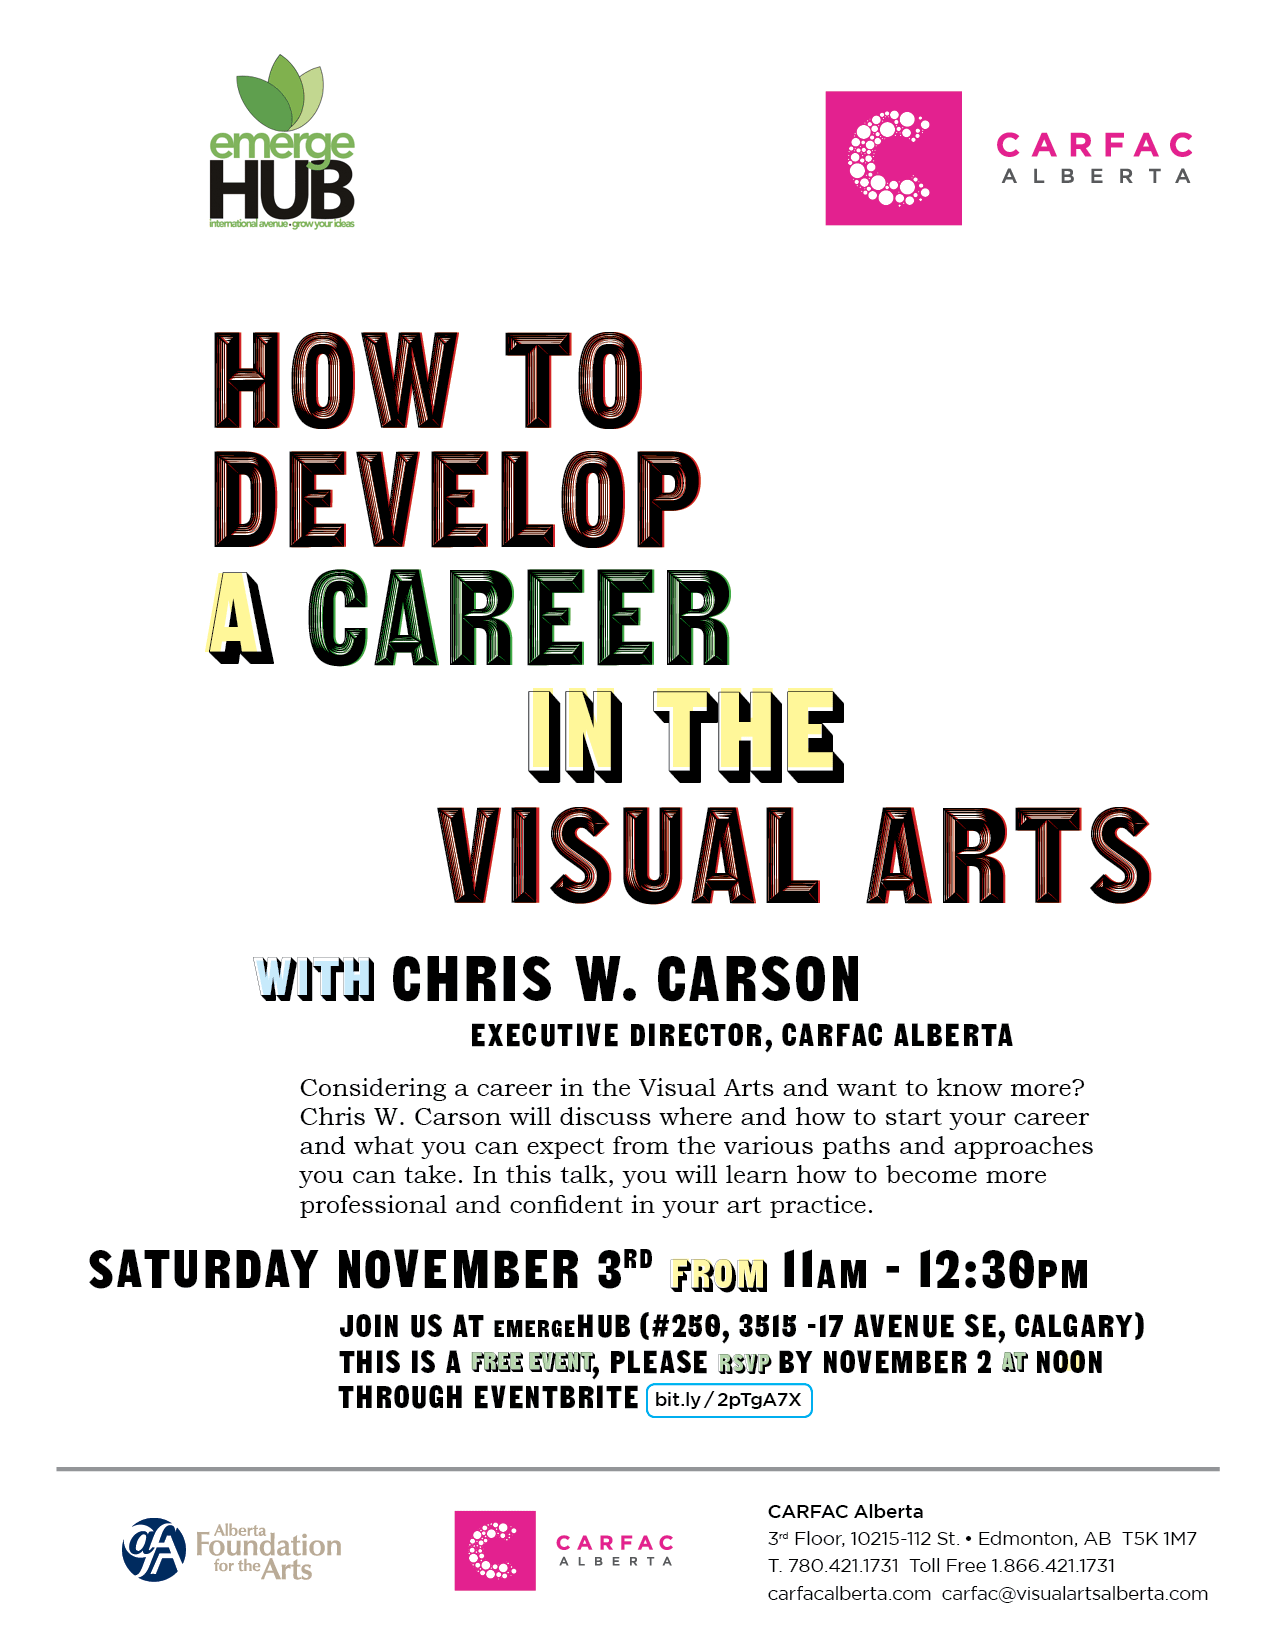 Poster for How to Develop Career Visual Arts with Chris W. Carson, Executive Director, CARFAC Alberta